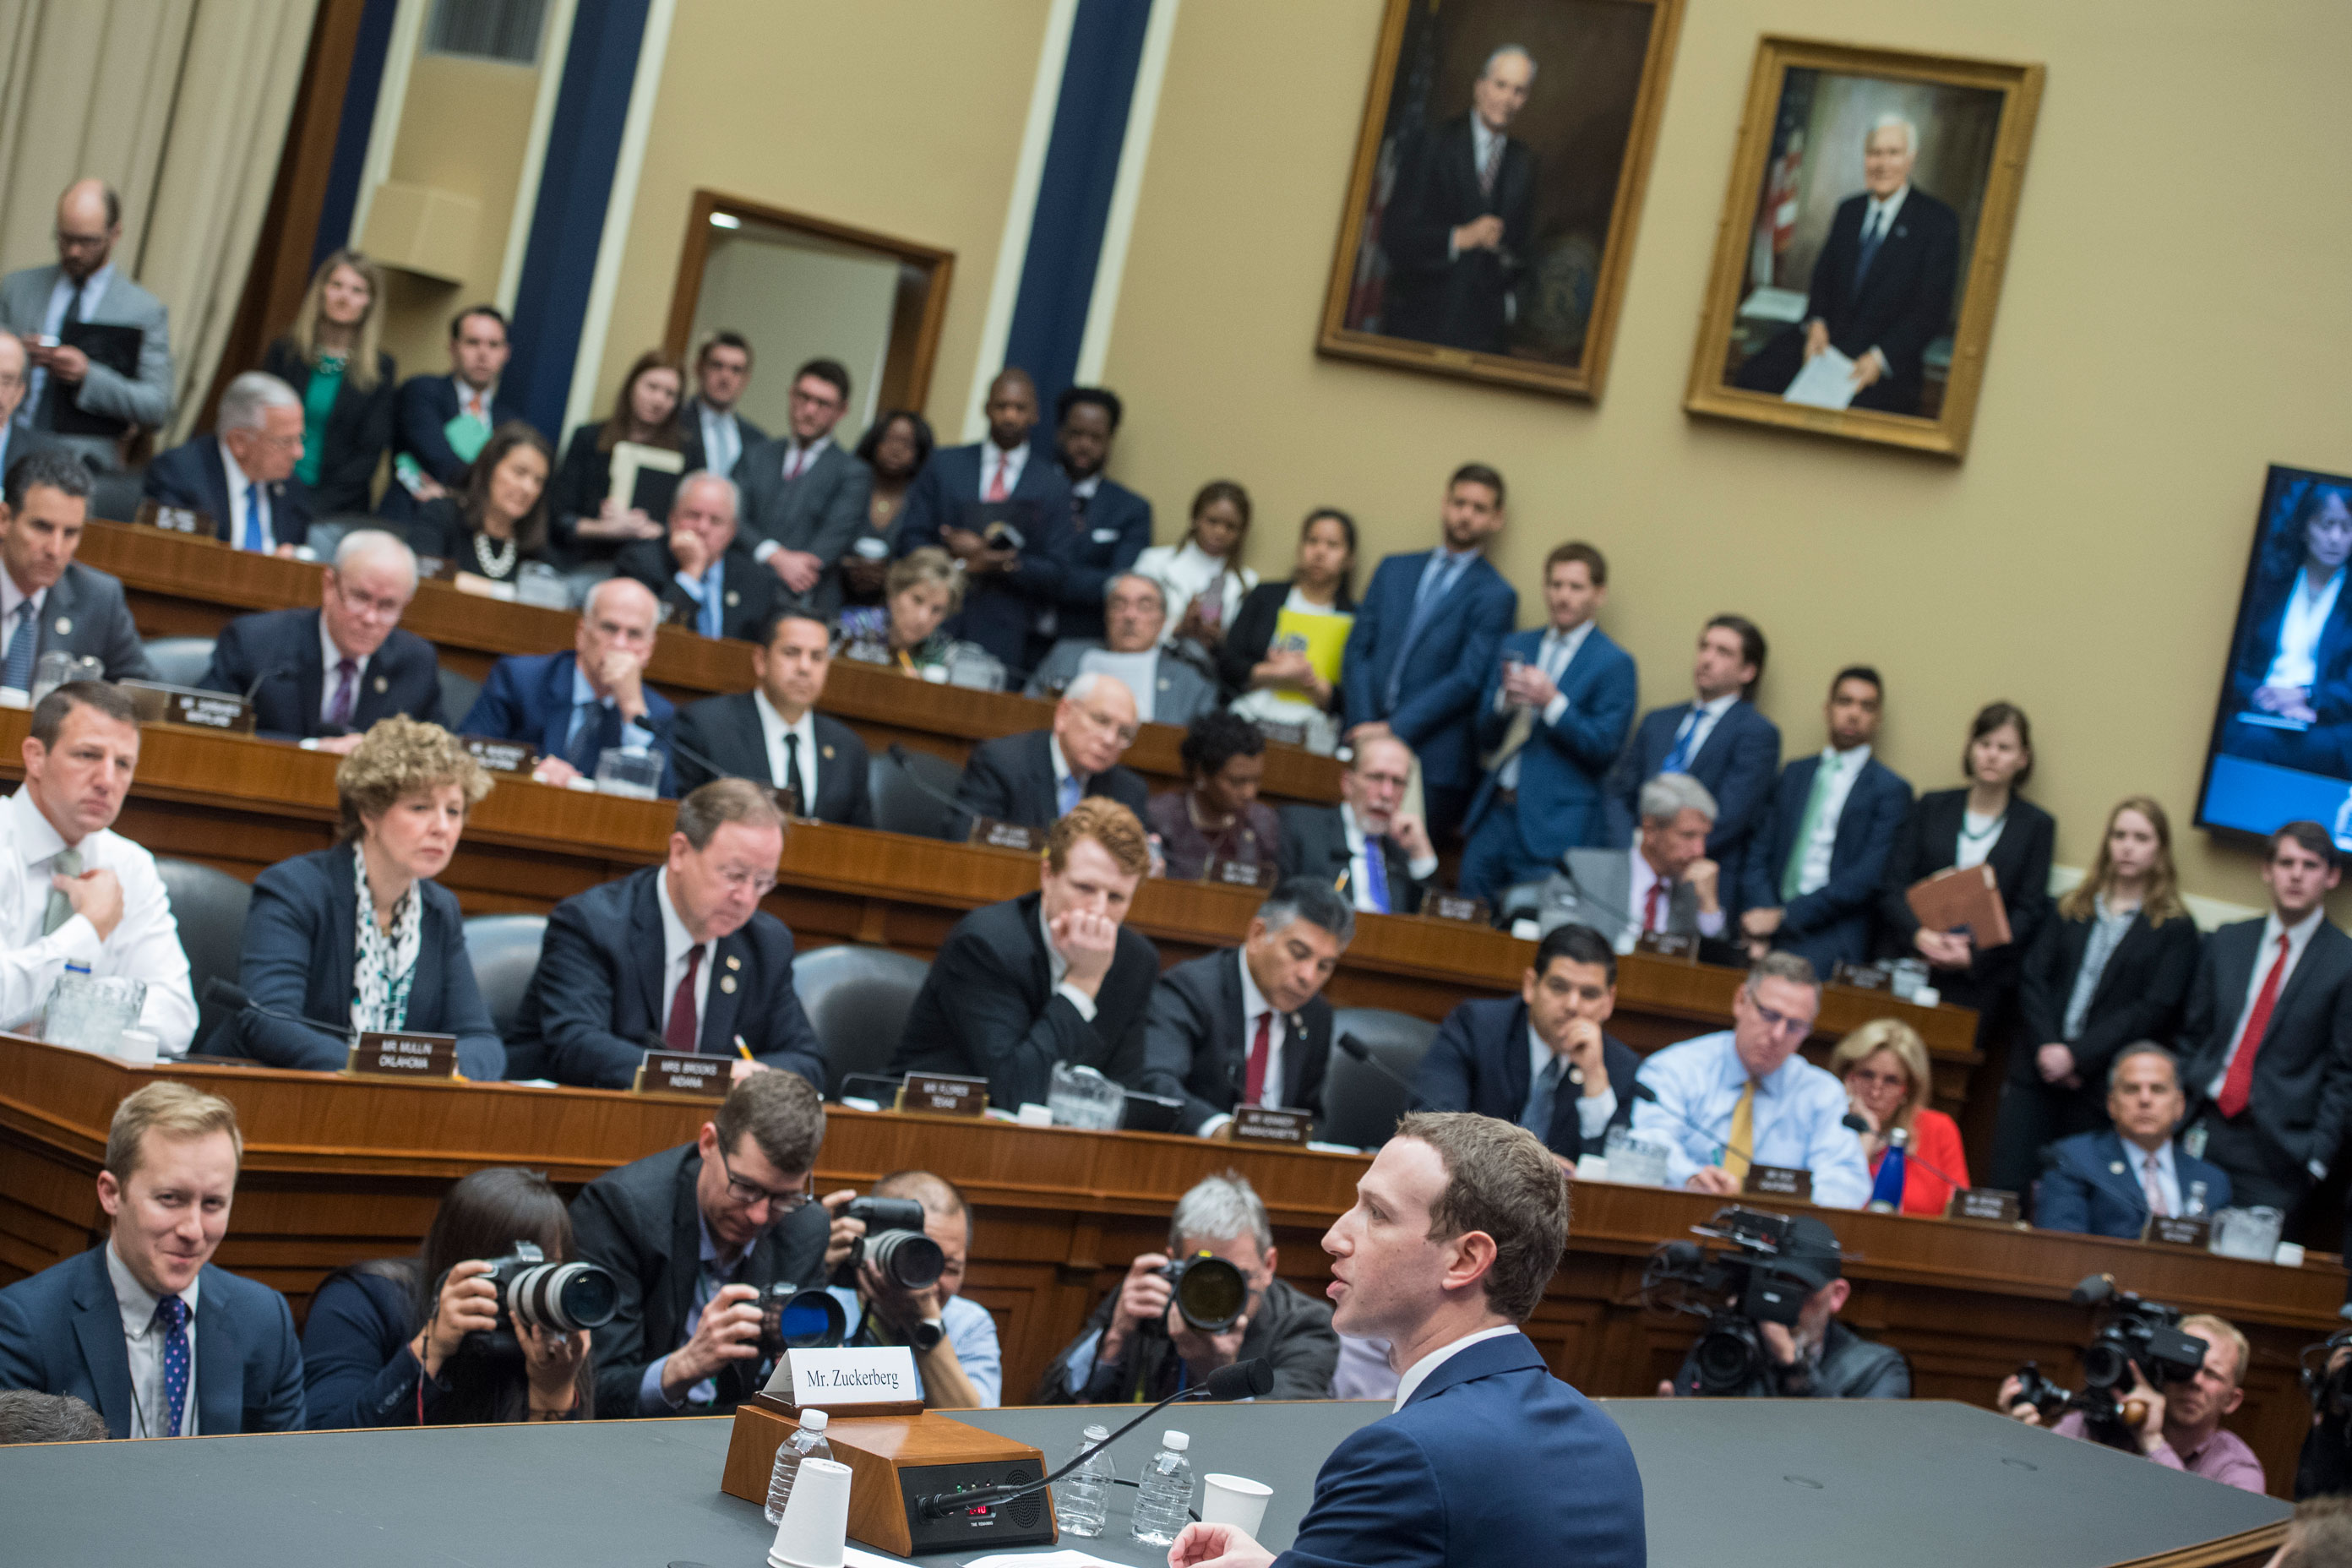 Senators demand answers from Zuckerberg over Facebook data access